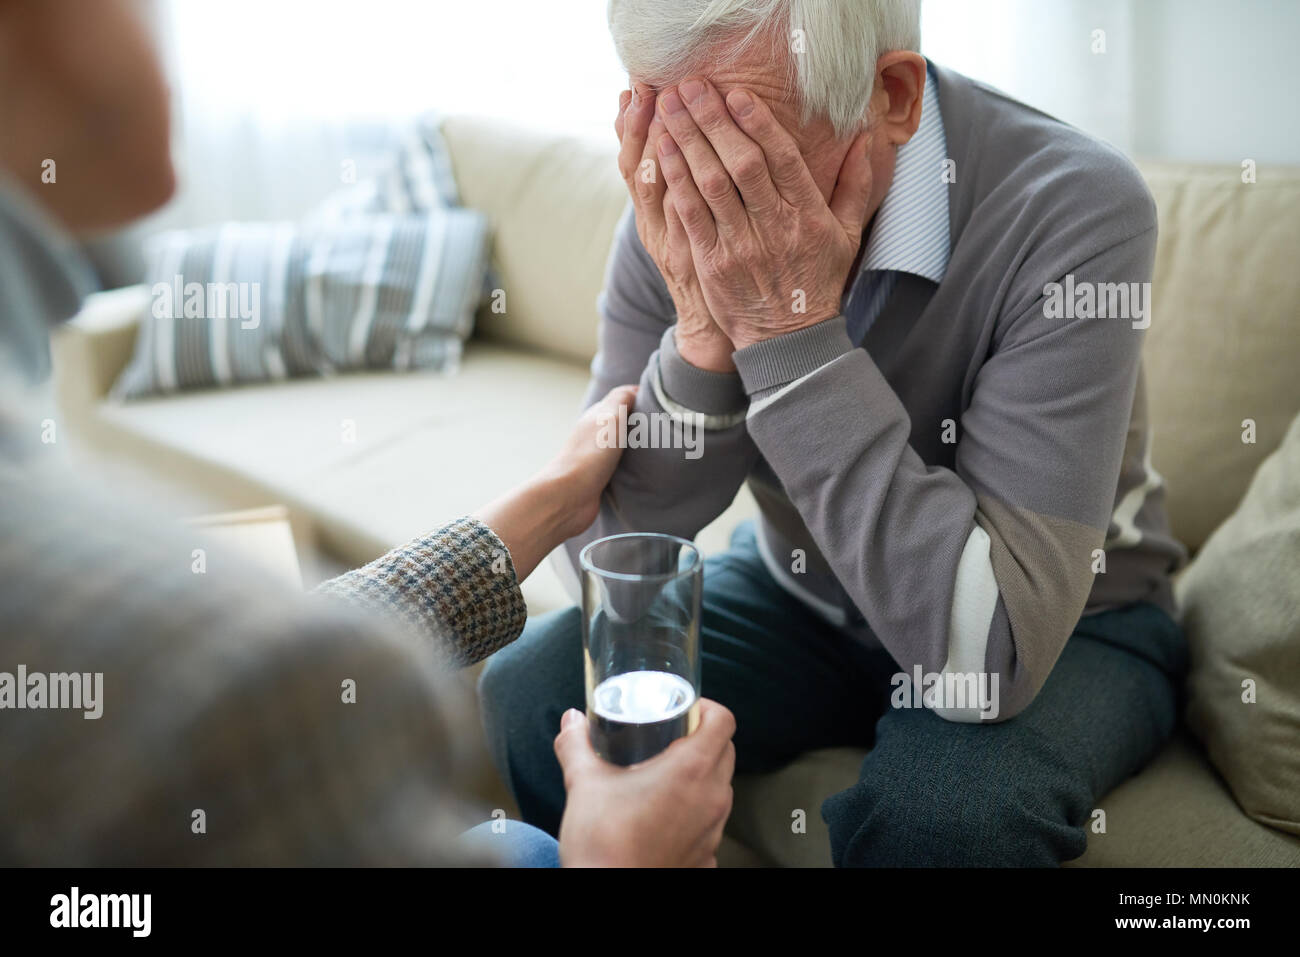 Crop compassionate person consoling elderly man in assisted living home holding glass of water. Stock Photo